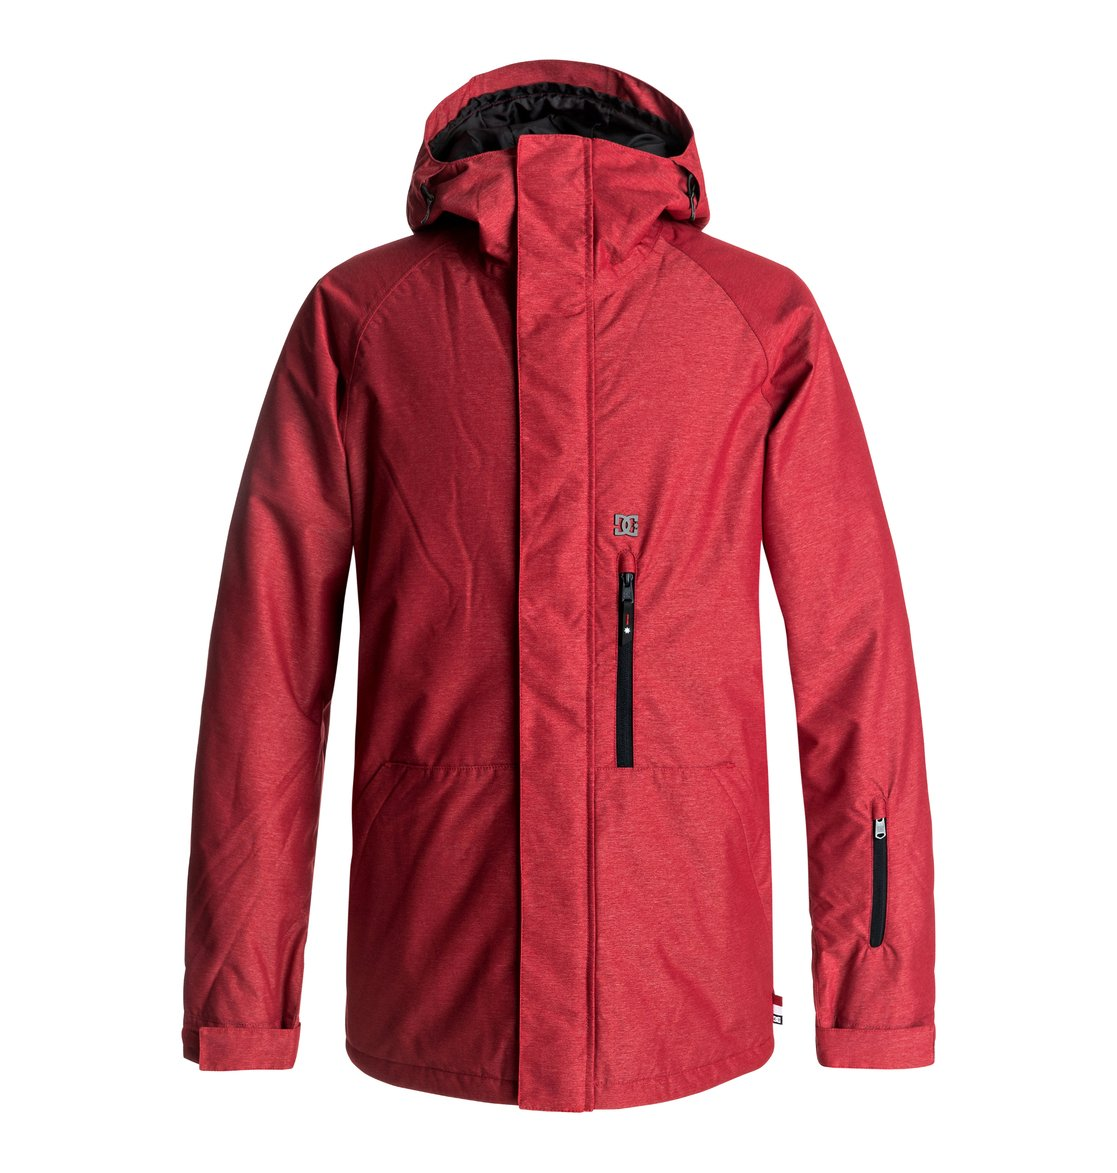 744479e020a8 Best Ski and Snowboard Jackets for Men 2018-2019